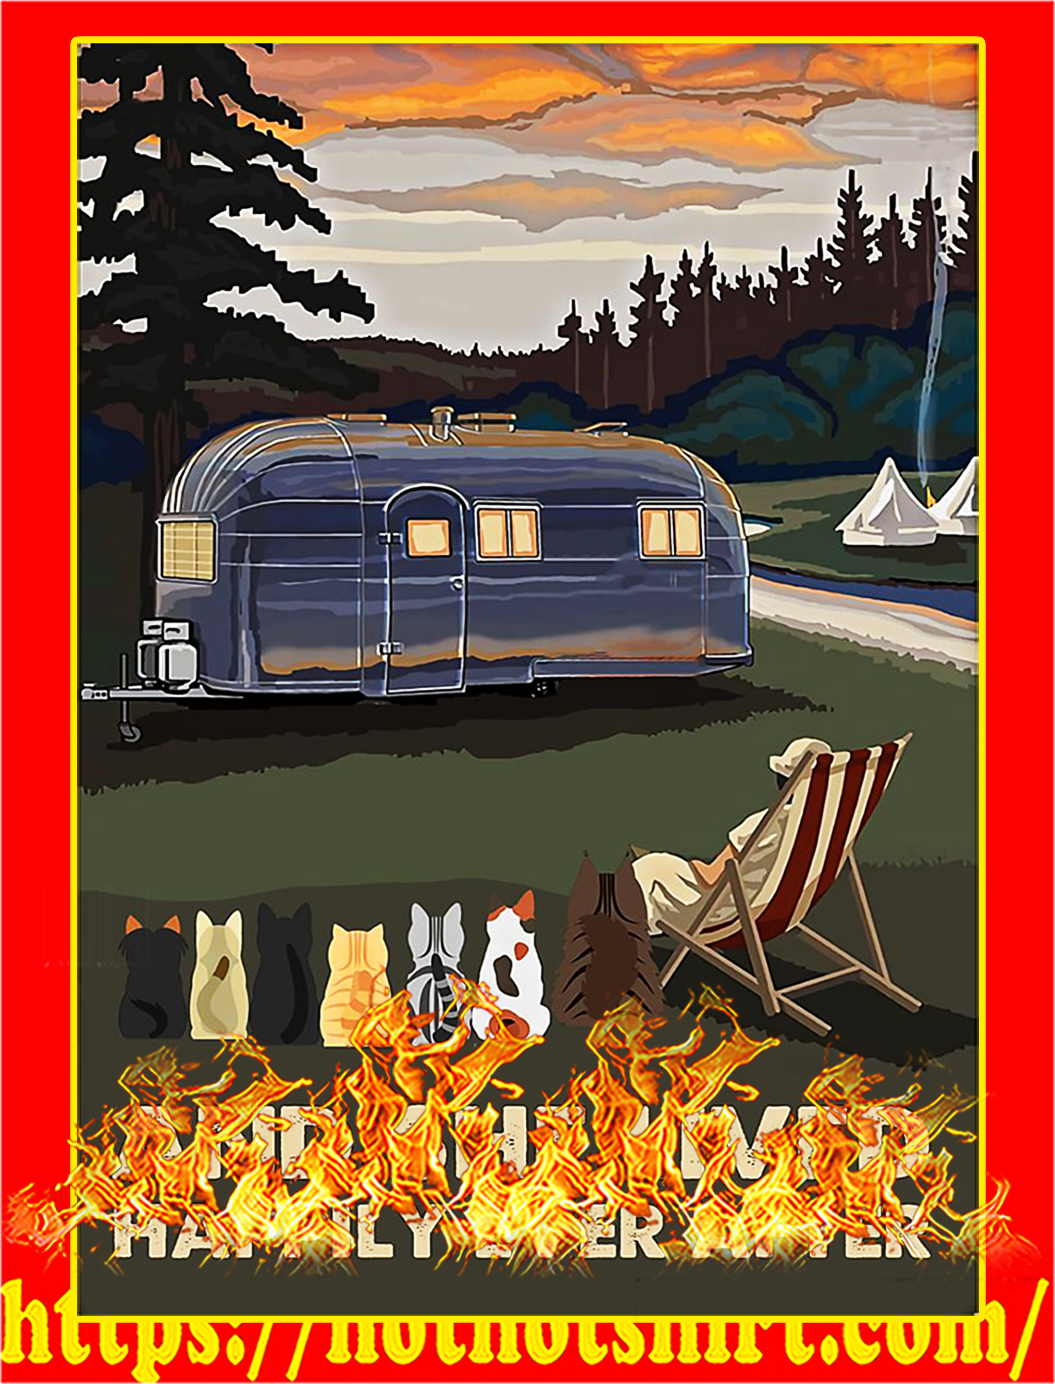 Camping and cats And she lived happily ever after poster - A2